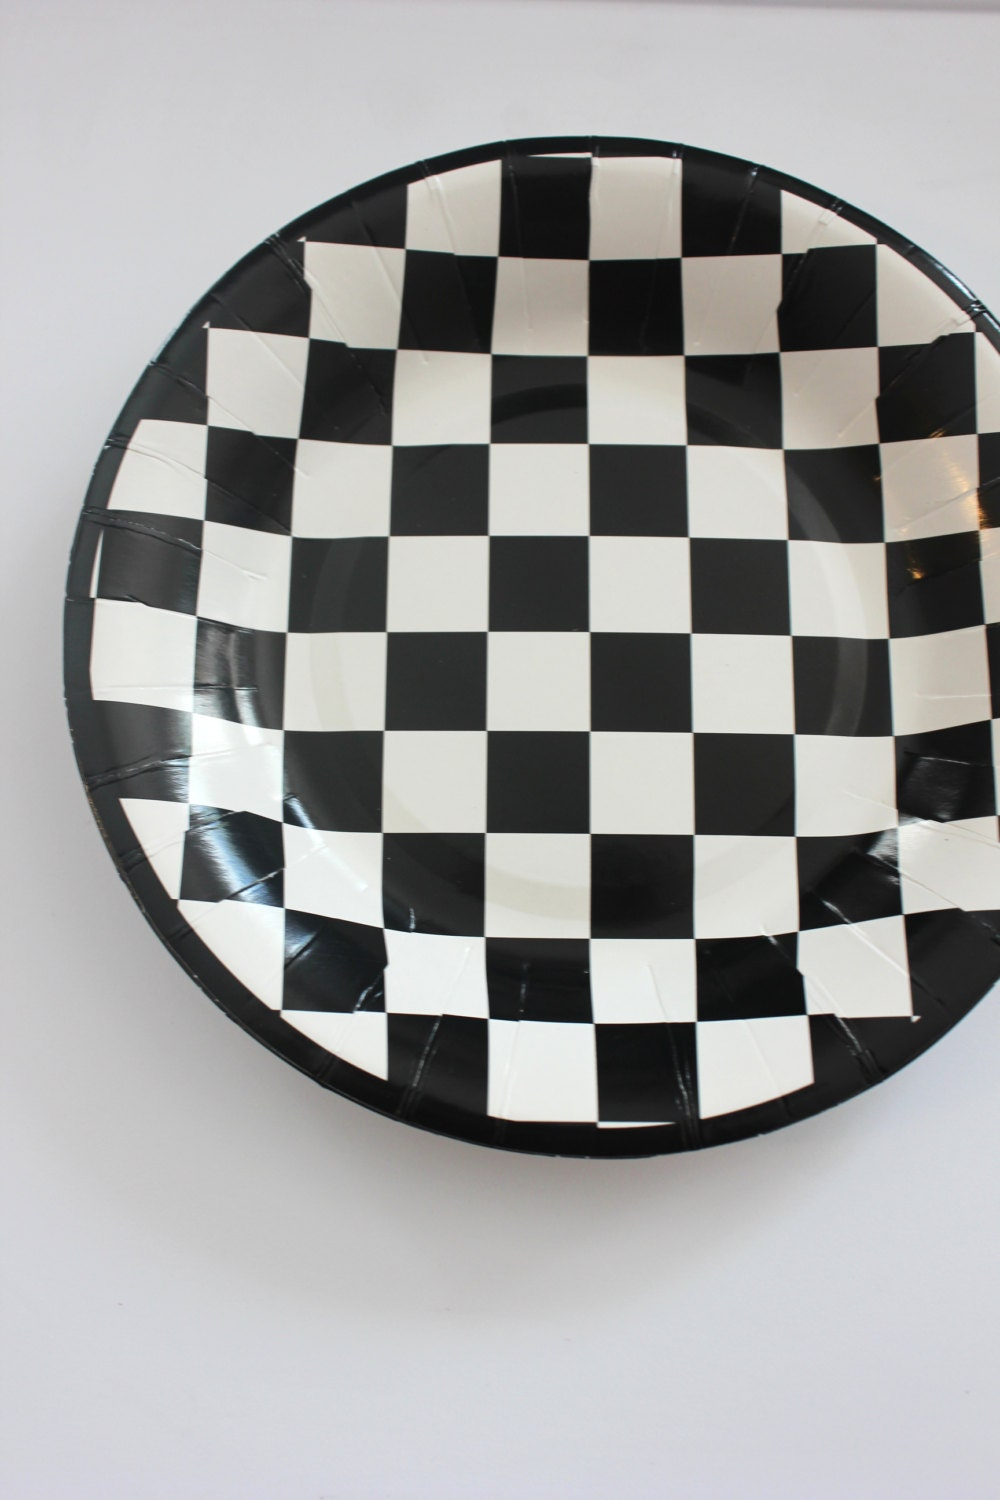 CA$16.42 & 16 BLACK And WHITE CHECKERED Paper Plates Cars Racecar Checkers ...